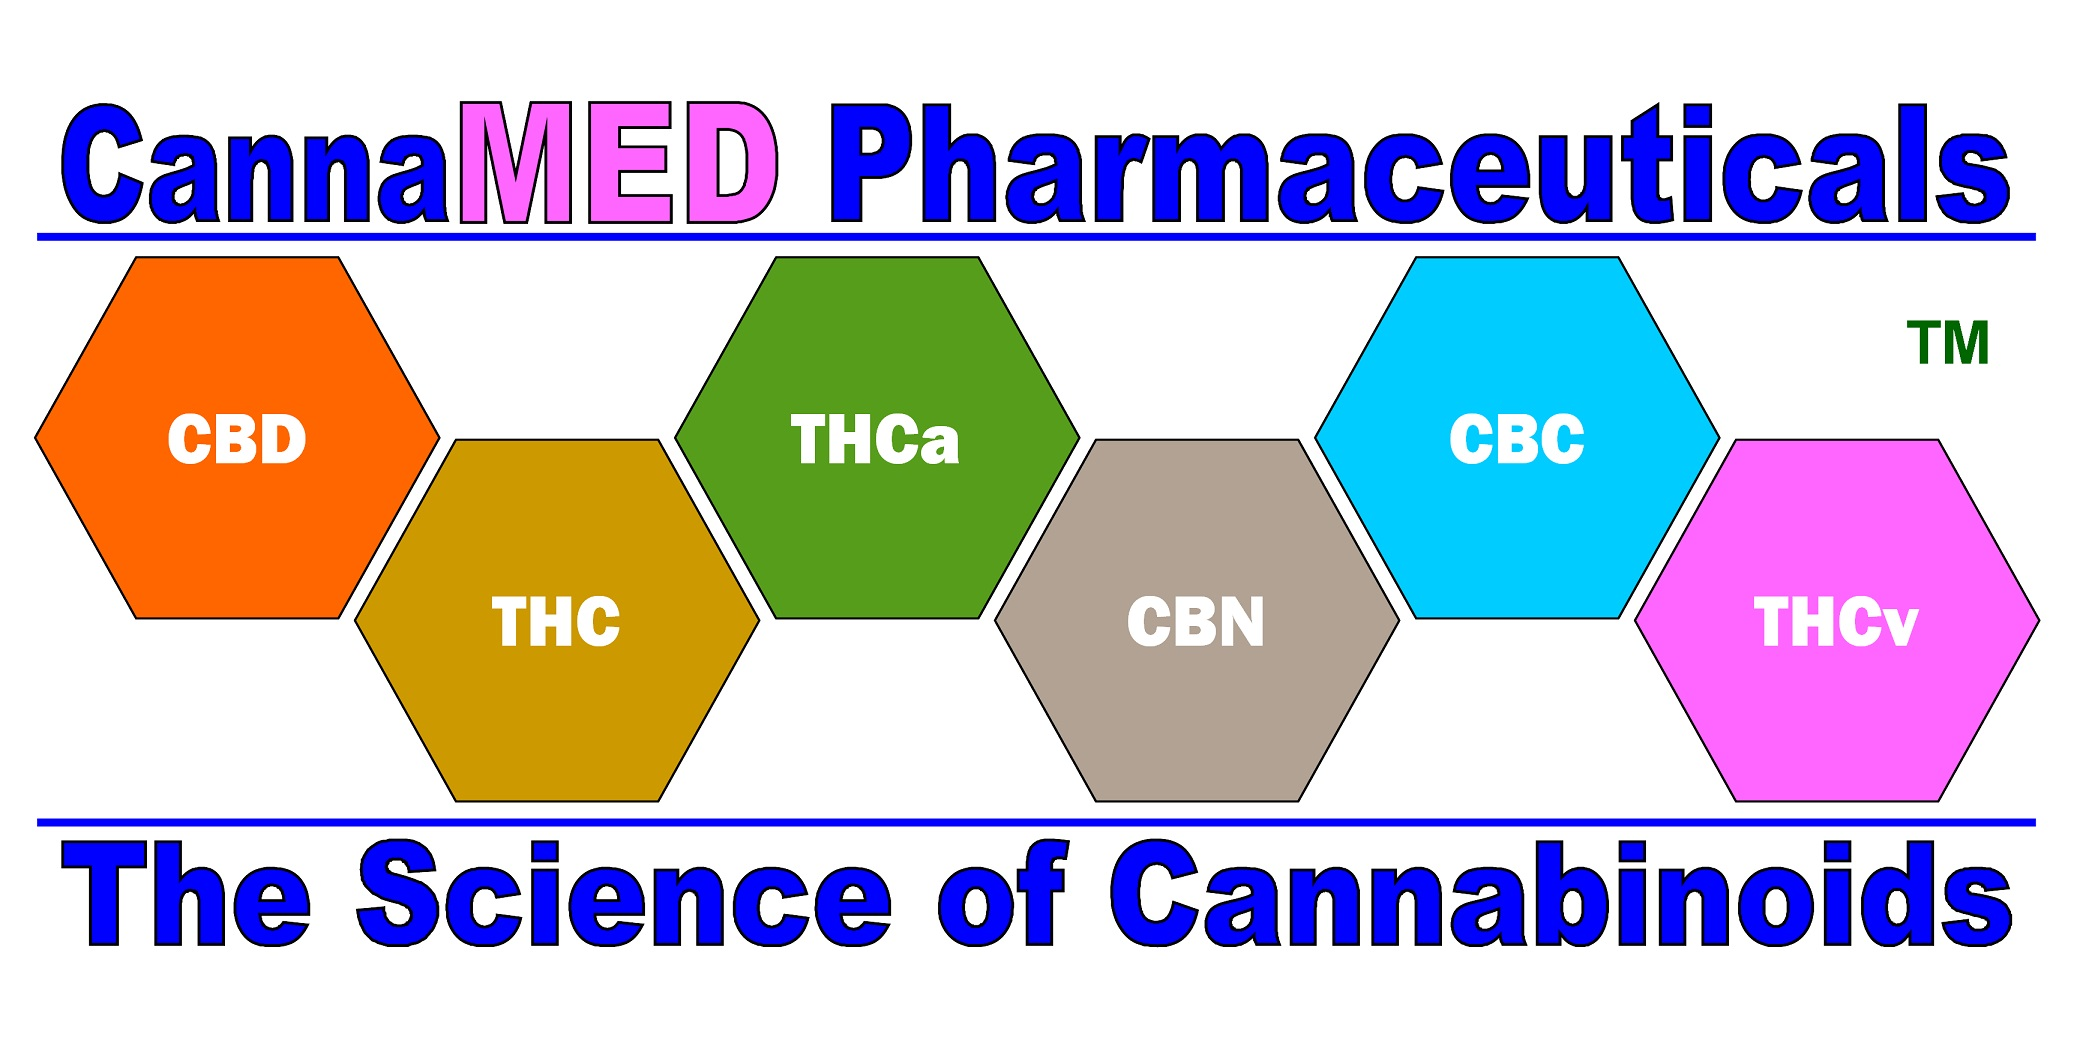 cannamed_logo_3.3.jpg